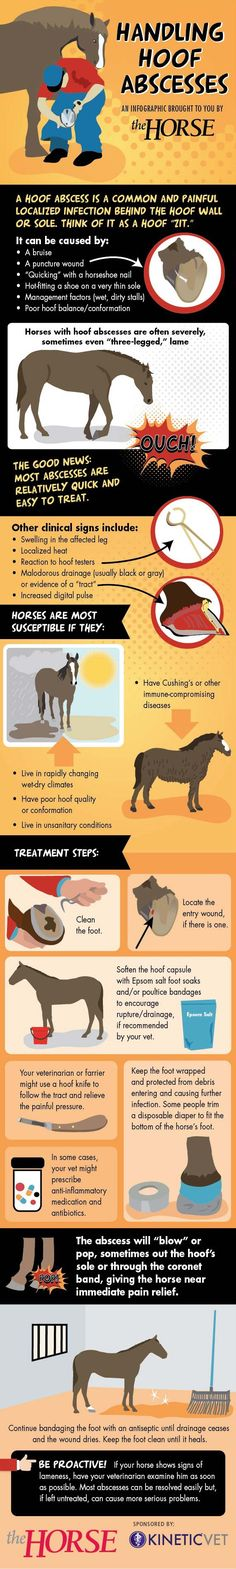 Infographic: Handling Hoof Abscesses | TheHorse.com